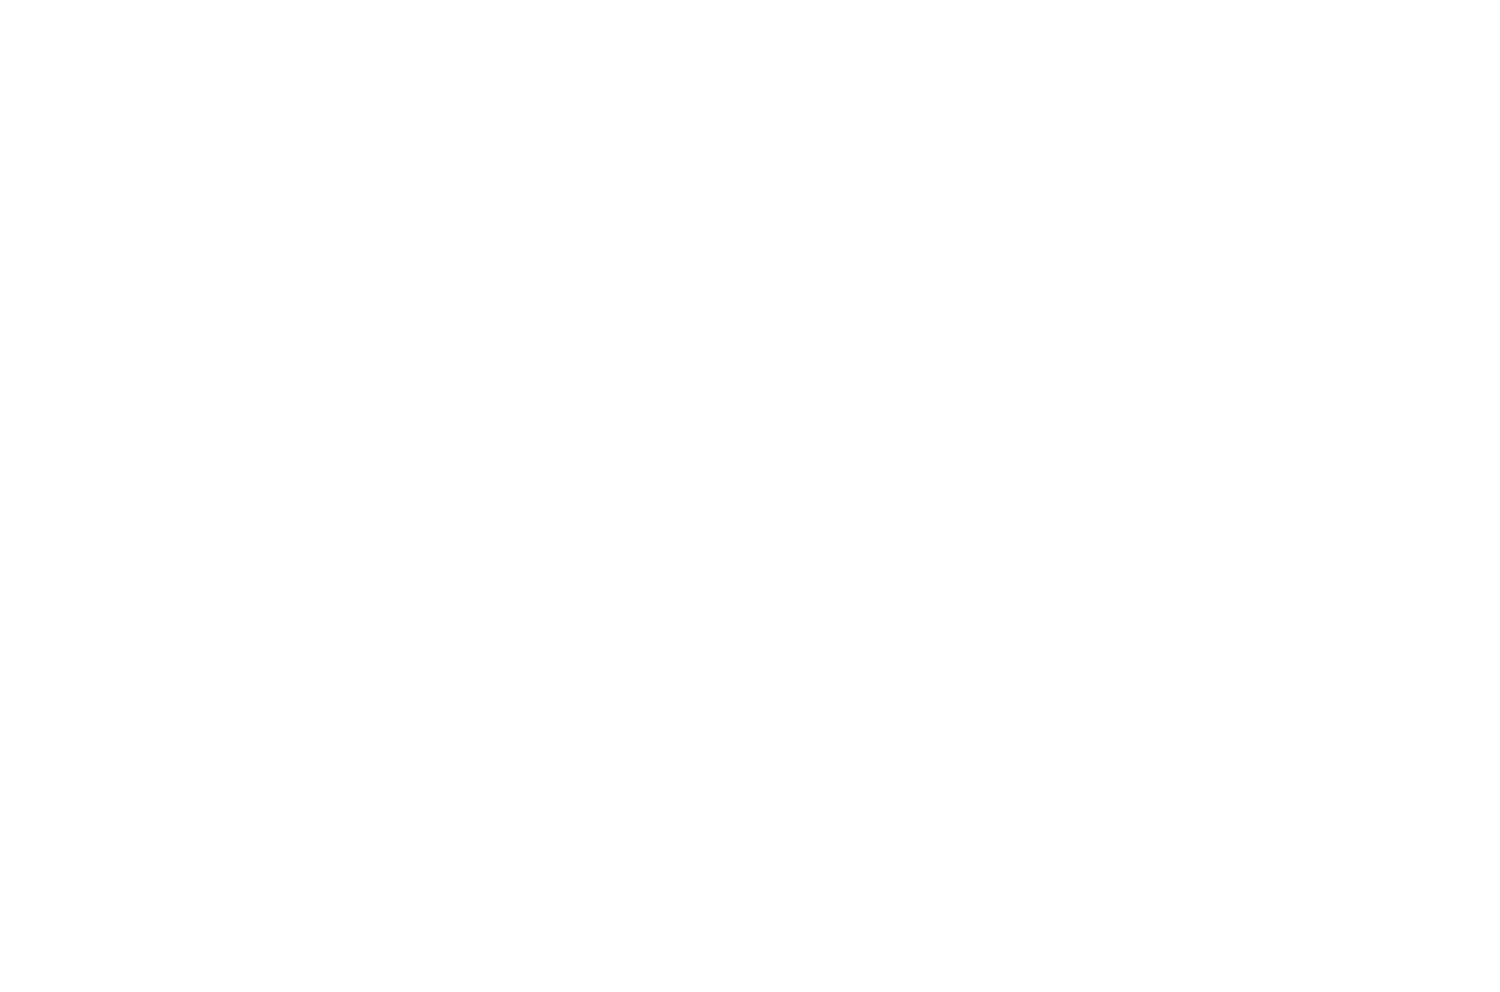 Studio Nash Salon & Spa